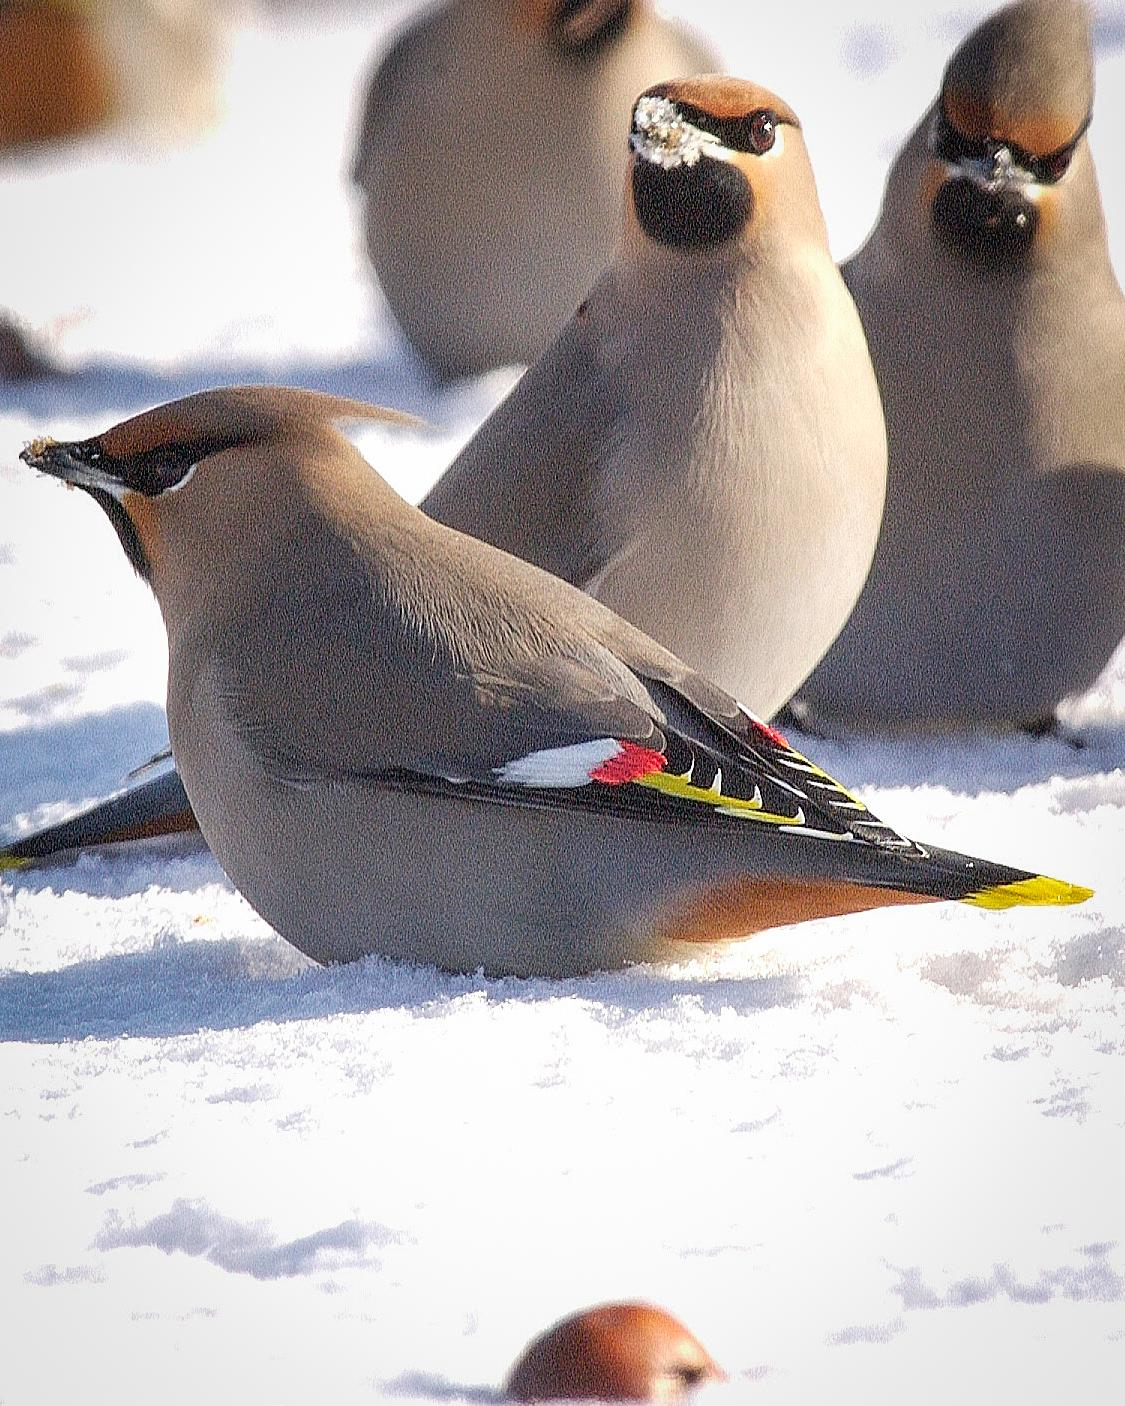 Bohemian Waxwing Photo by Arnie Simpson